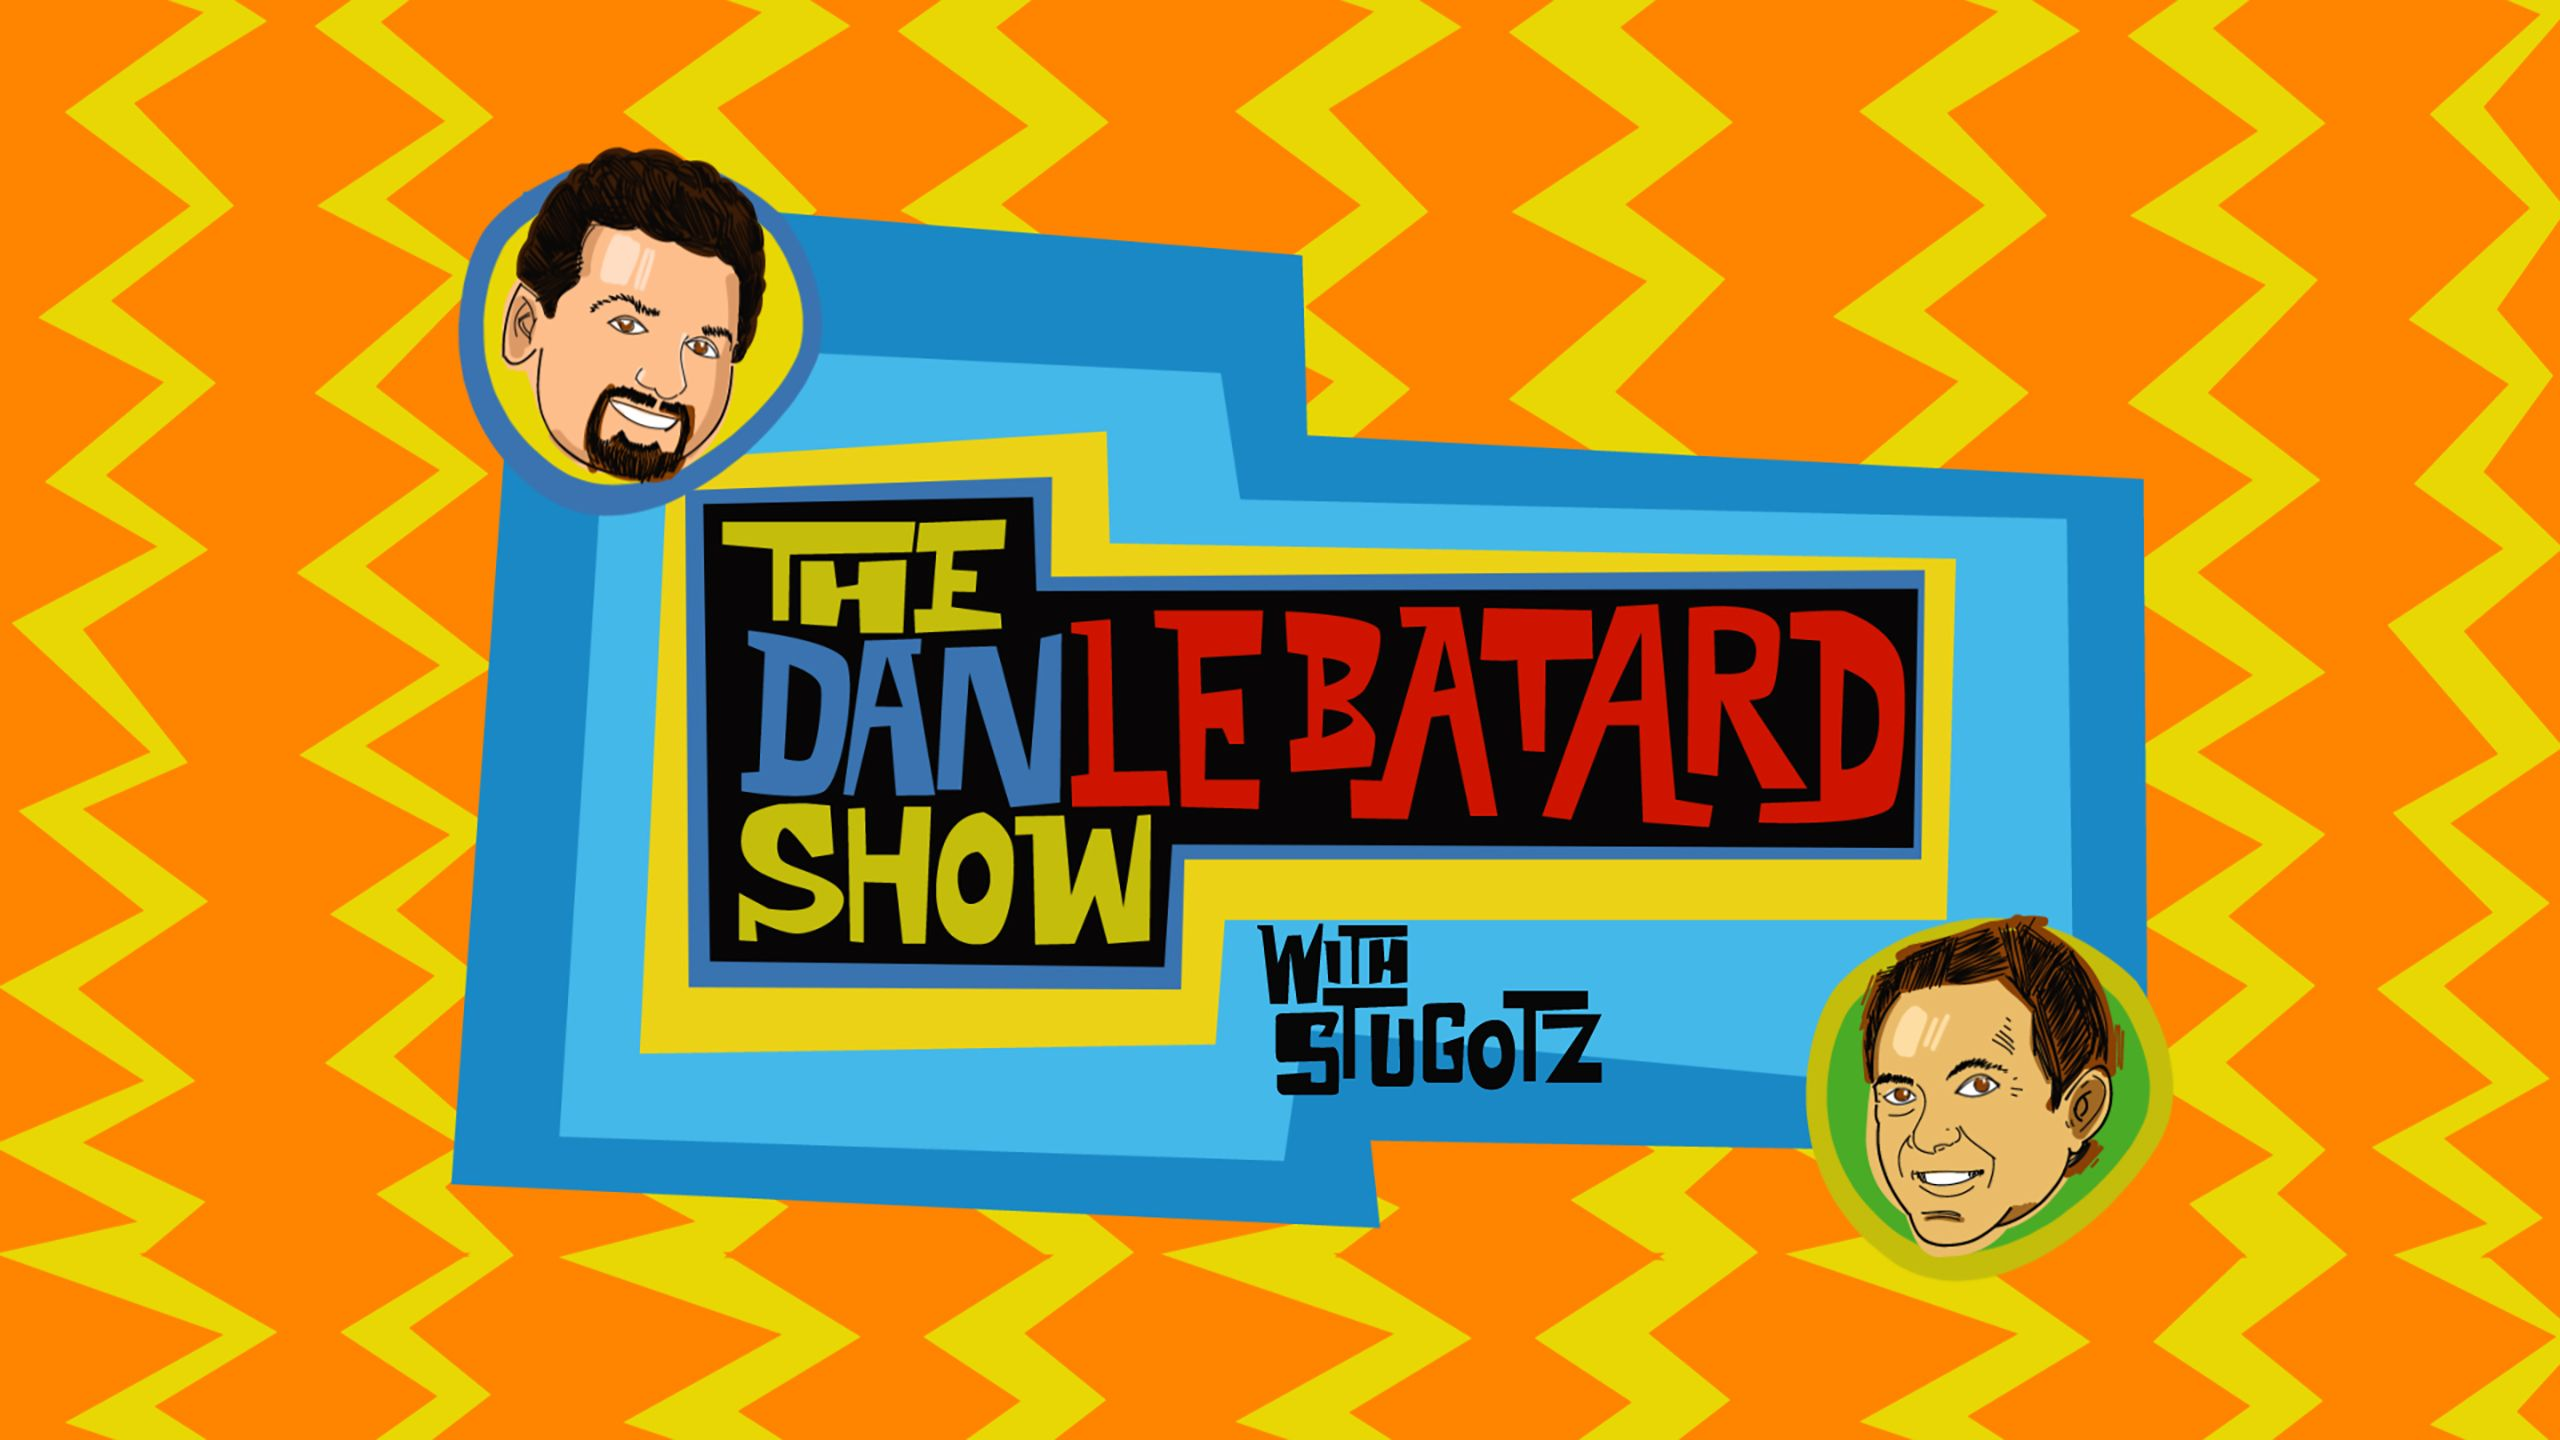 Tue, 2/20 - The Dan Le Batard Show with Stugotz Presented by Progressive